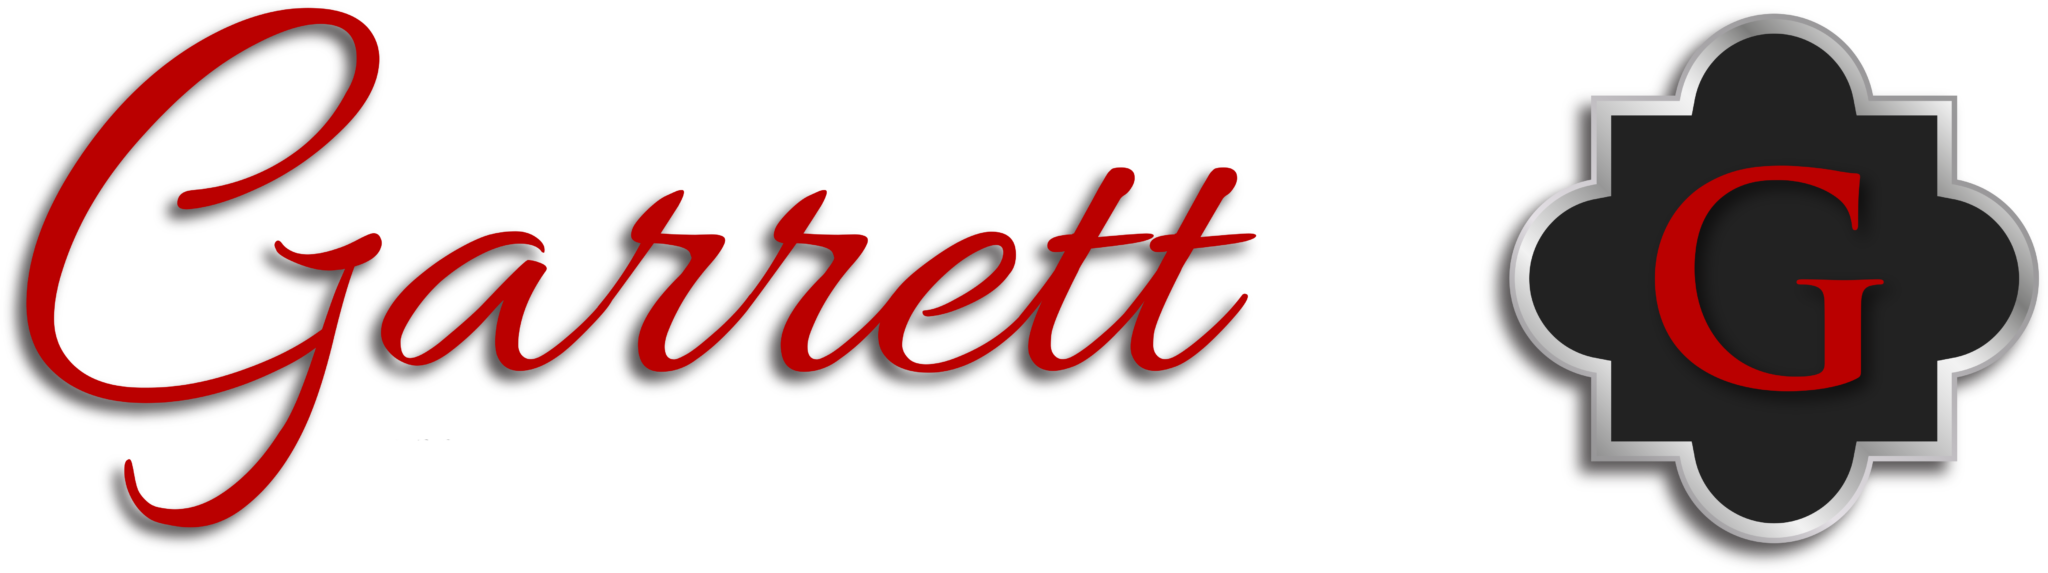 Garrett Signature Homes